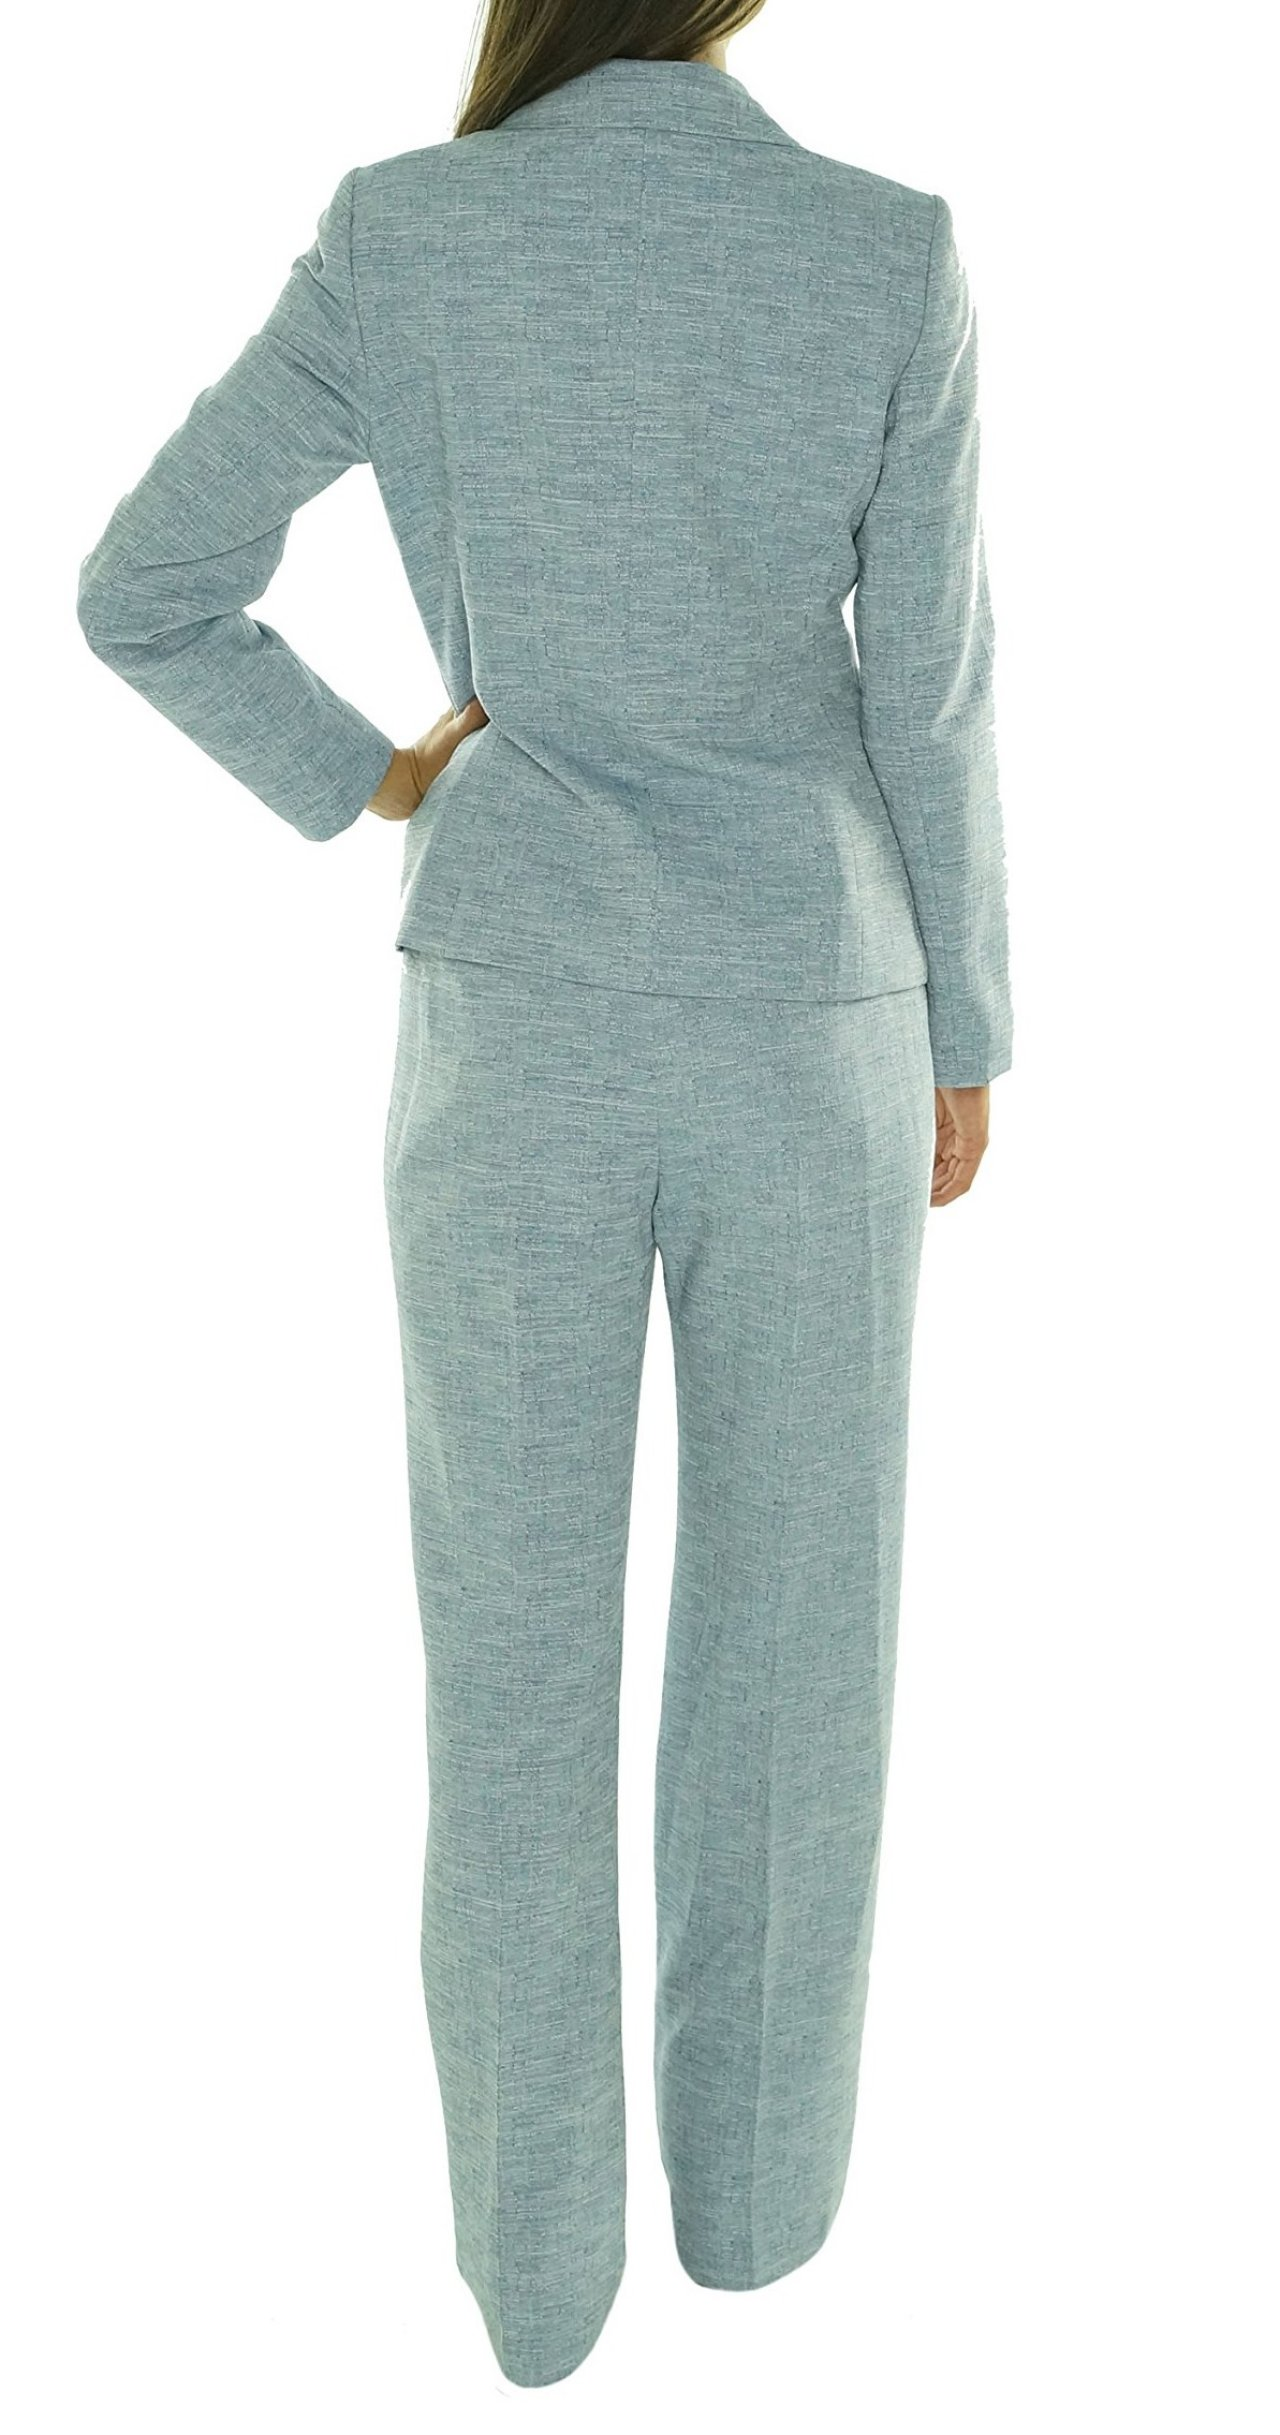 New Le Suit Le Suit NEW Blue Navy Crepe Notched Lapel Women39s Size 14 Pant